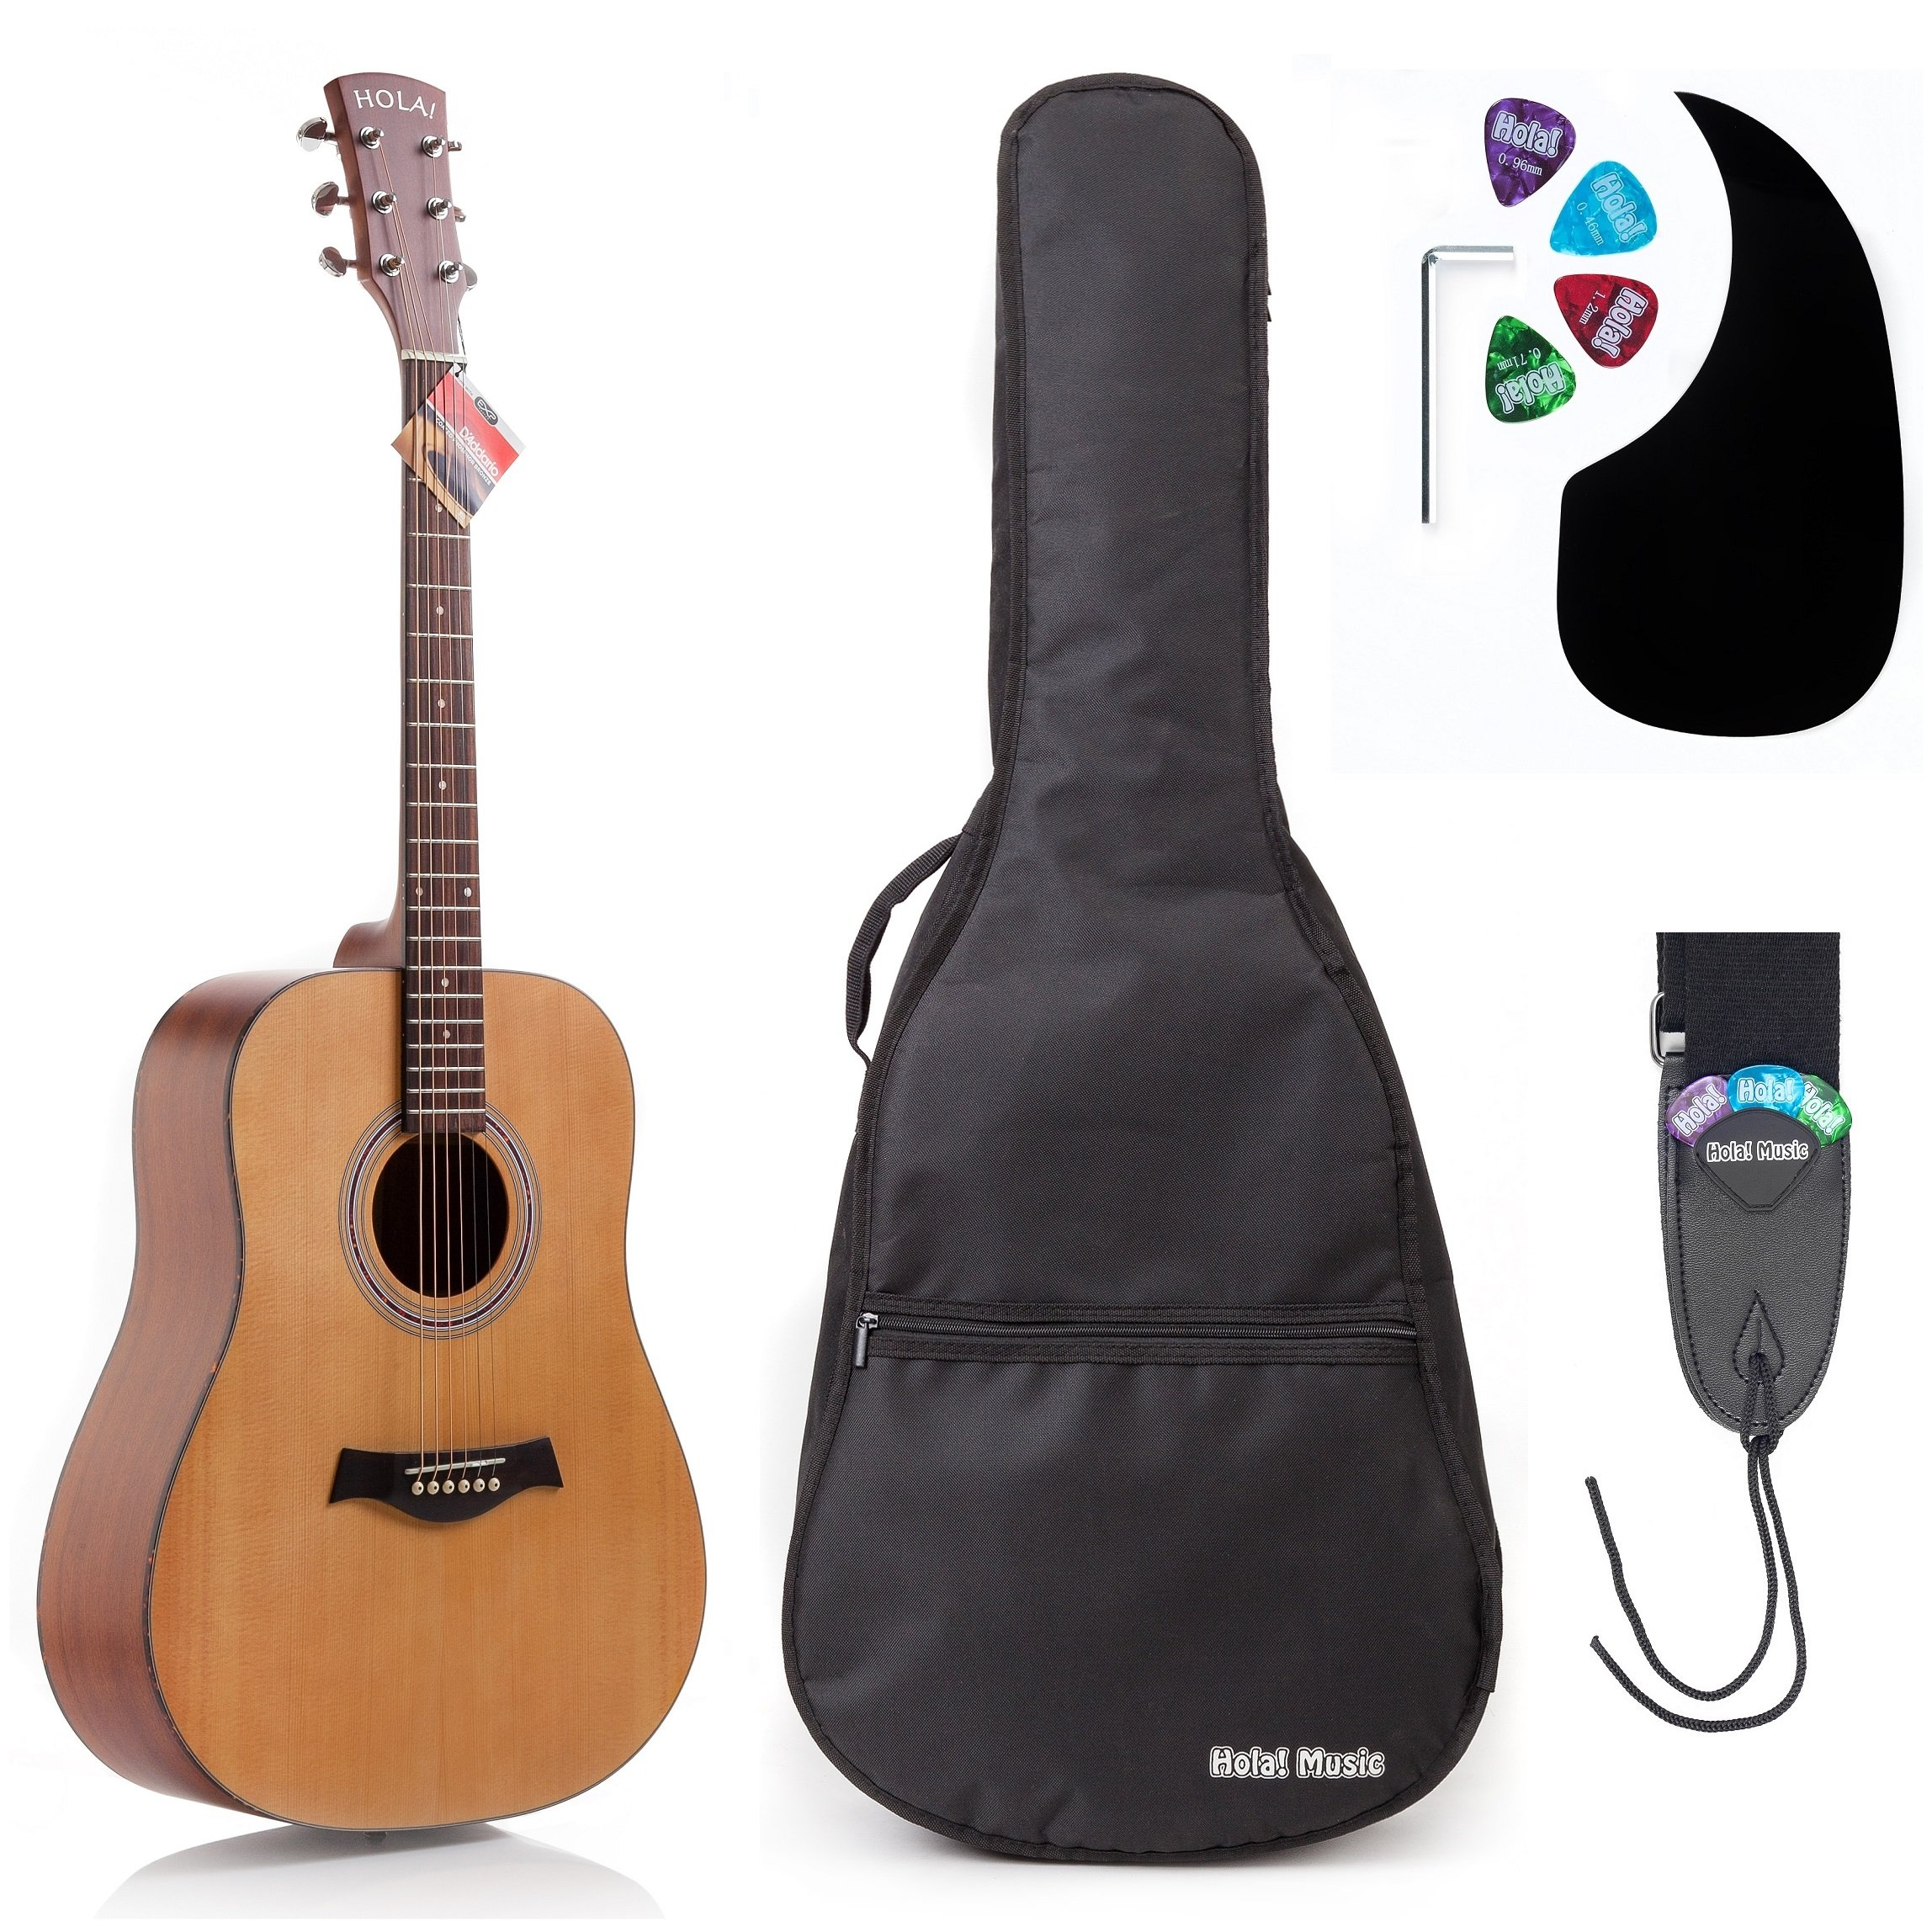 Acoustic Guitar Bundle Dreadnought Series by Hola! Music with D'Addario EXP16 Steel Strings, Padded Gig Bag, Guitar Strap and Picks, Full Size 41 Inch (Model HG-41N), Natural Satin Finish by Hola! Music